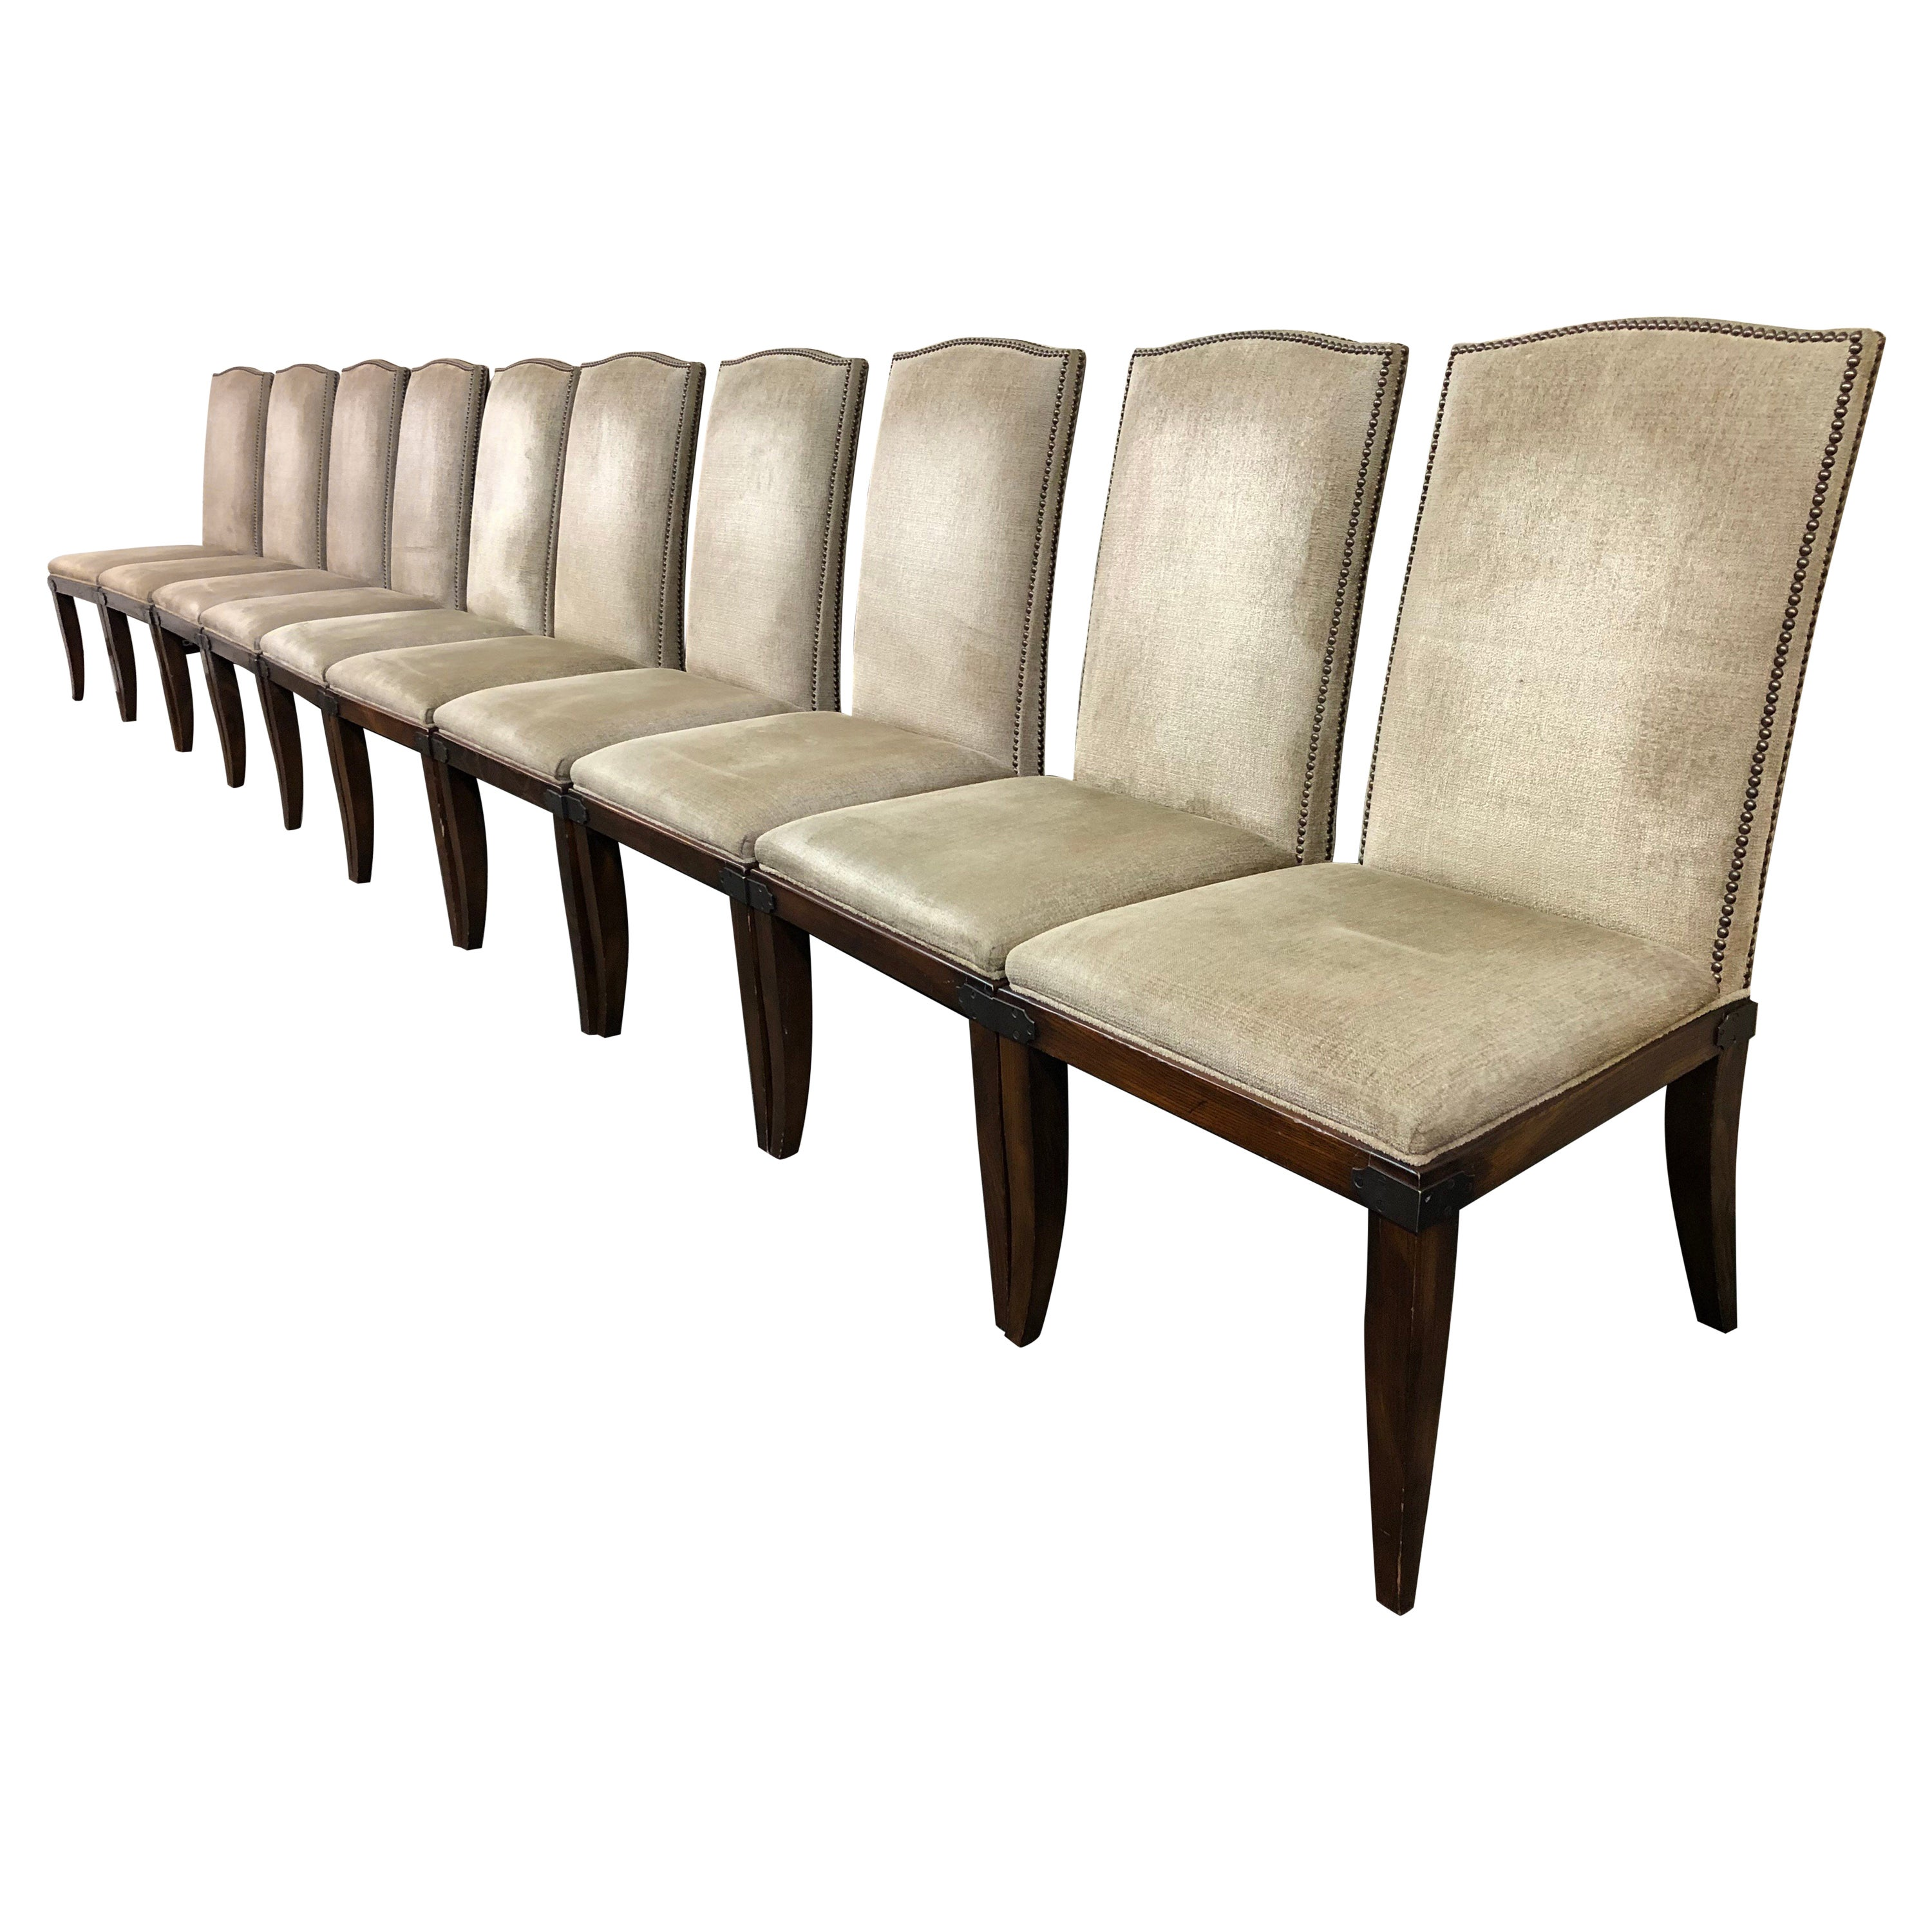 Hickory Chair Company Chelsea Dining Chairs Set of Ten For Sale at 1stdibs  sc 1 st  1stDibs & Hickory Chair Company Chelsea Dining Chairs Set of Ten For Sale at ...